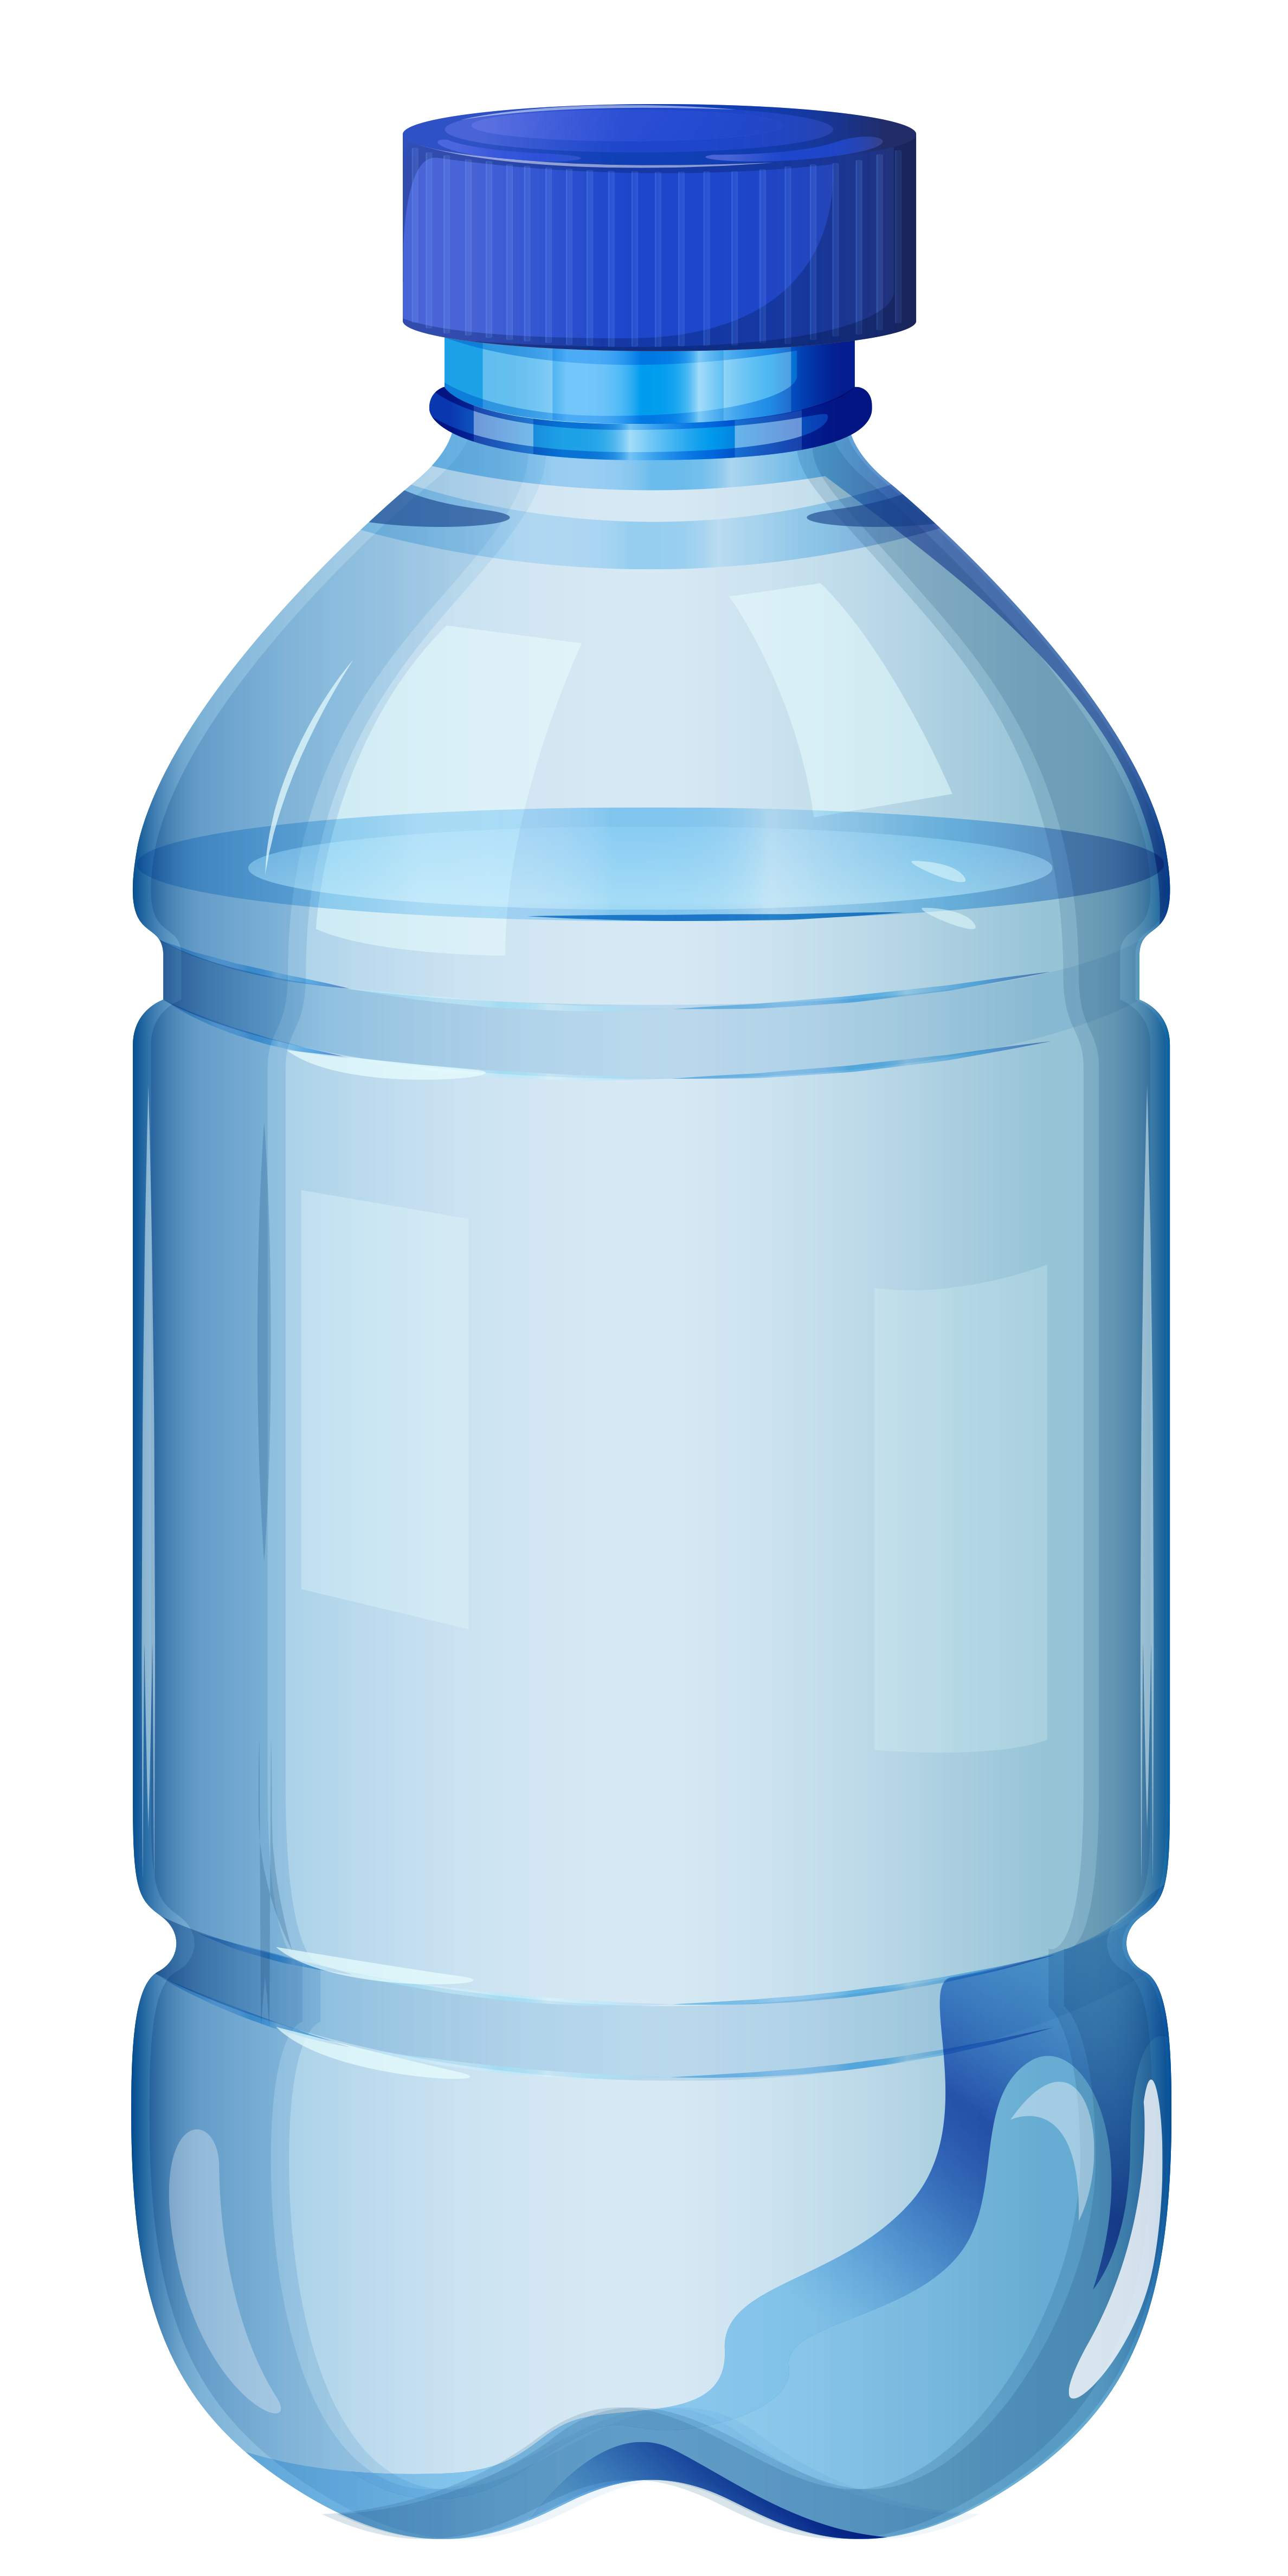 Water jug pictures clipart royalty free stock Free Water Bottles Cliparts, Download Free Clip Art, Free ... royalty free stock